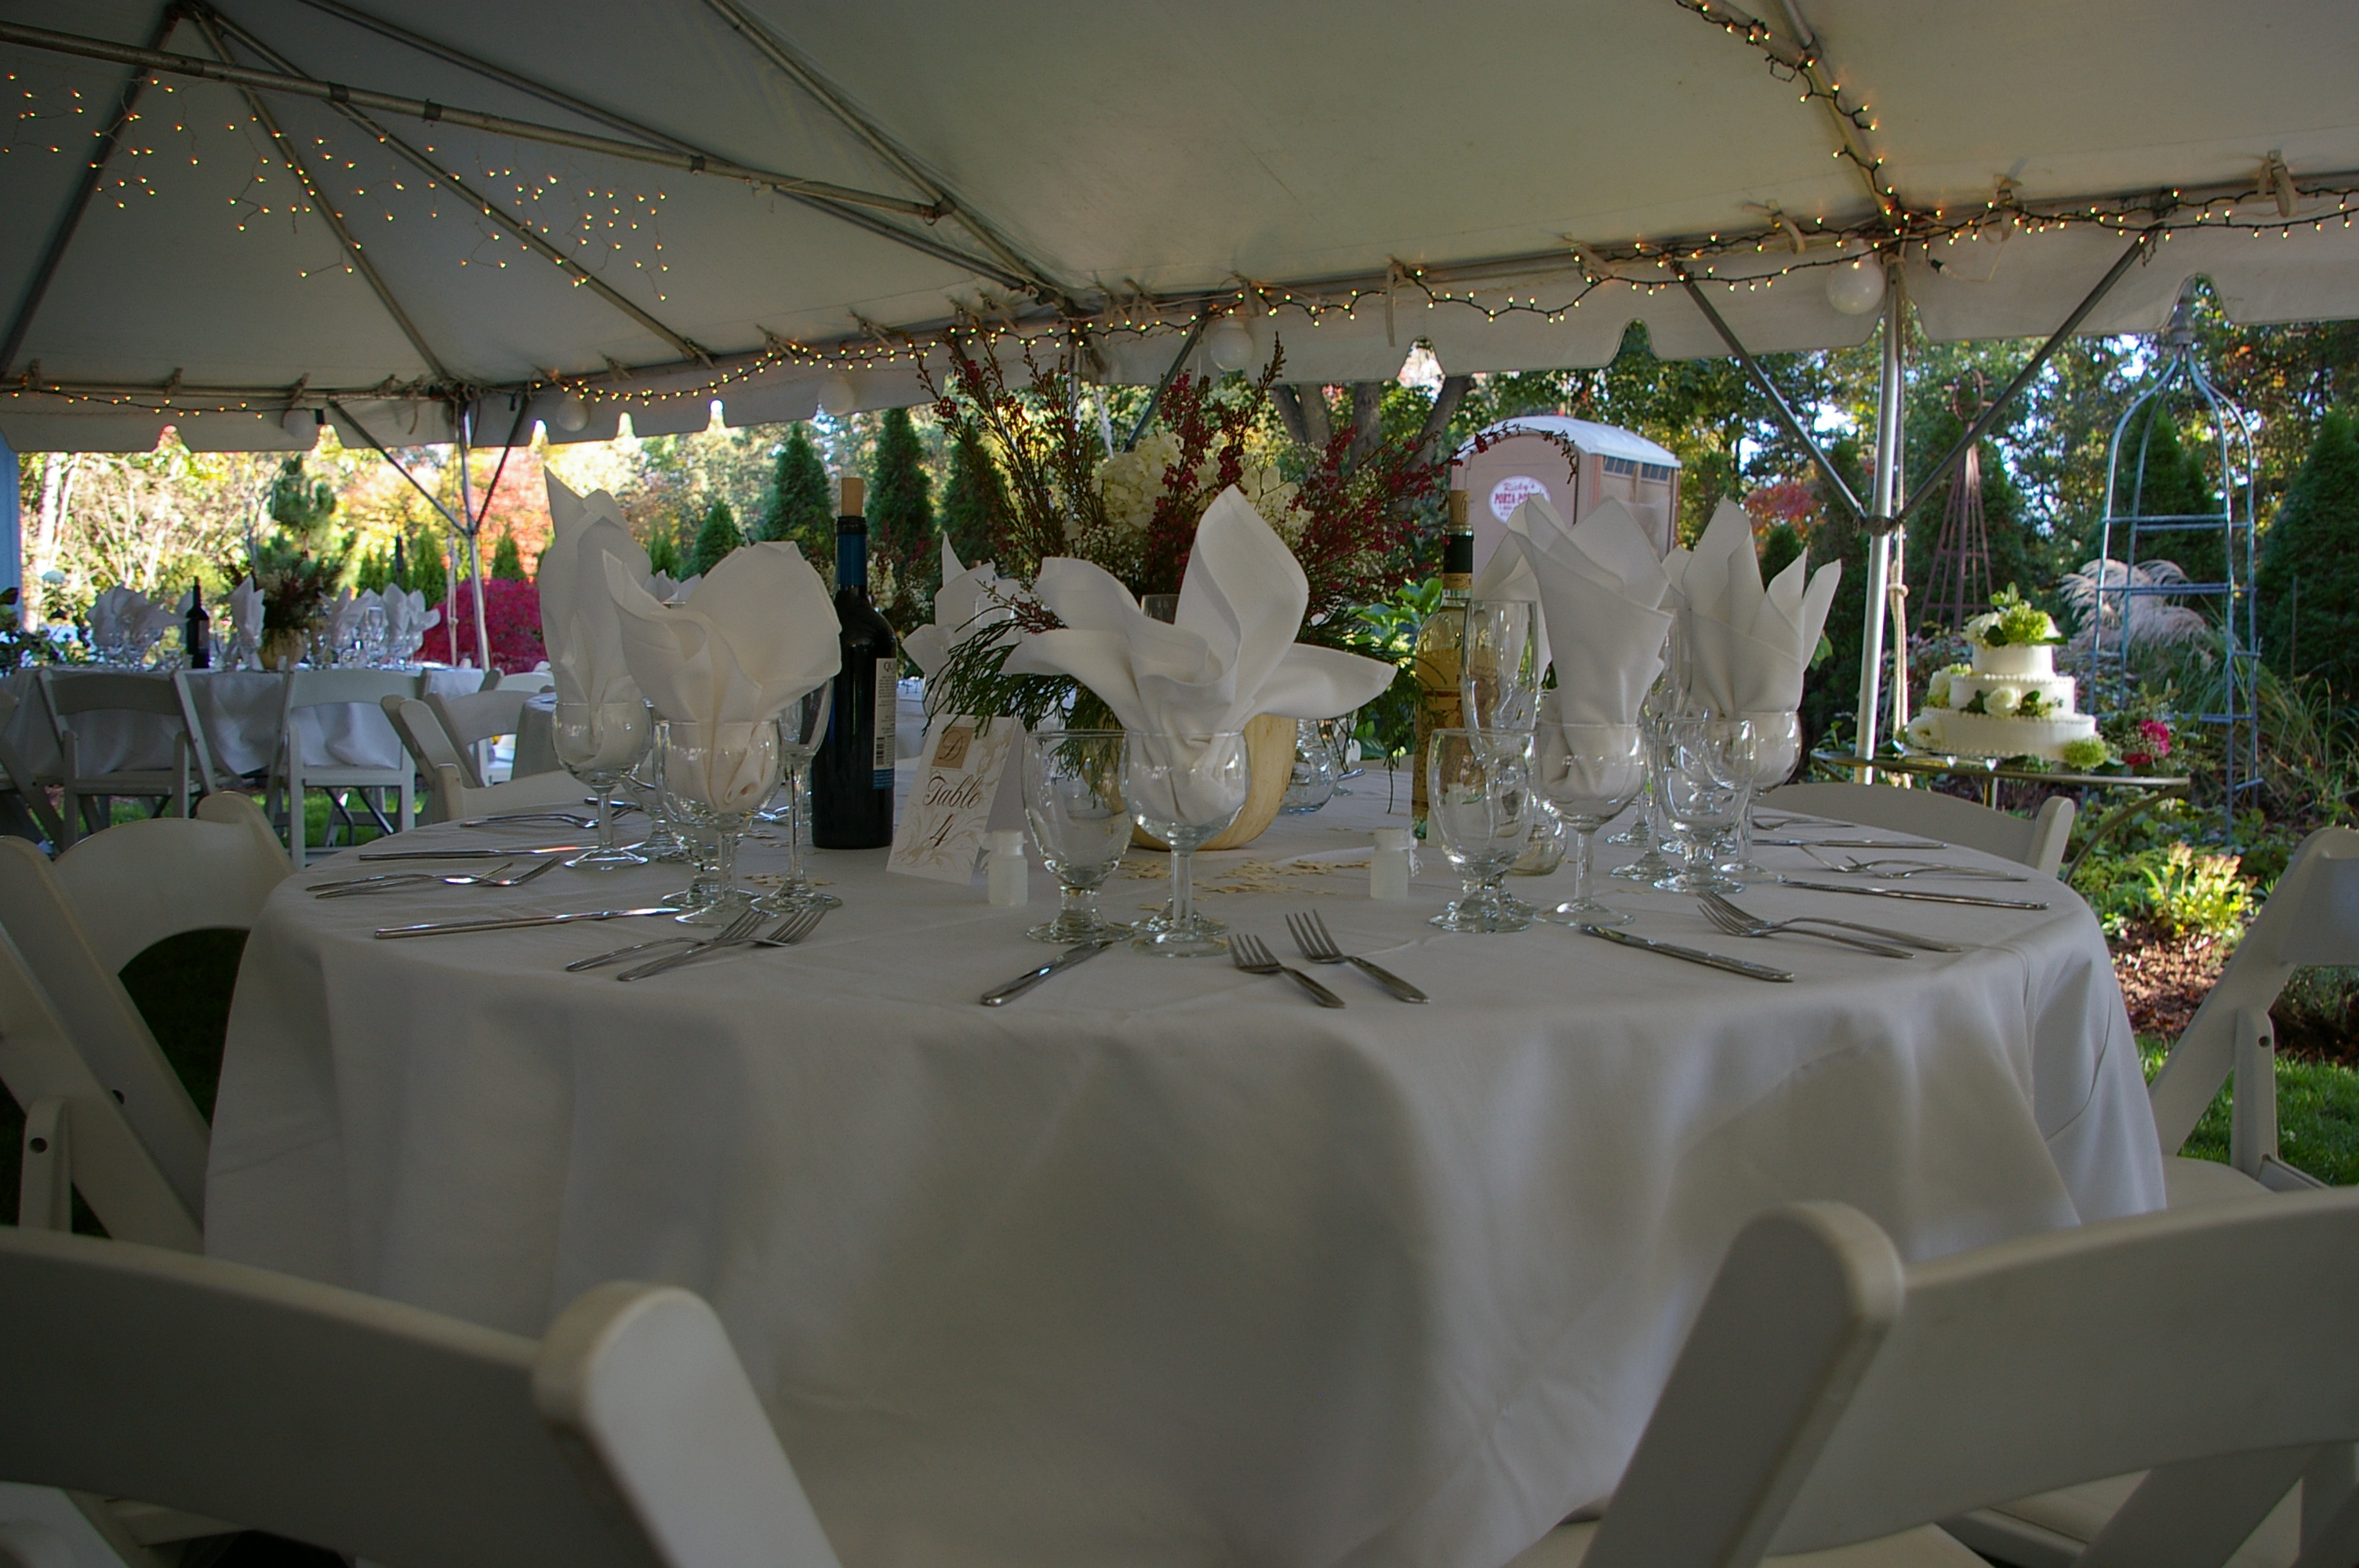 Simple Buffet Table Setting with Water Goblet Wine Glass and White Napkin set prior & Table Setting 7 - Taylor Rental of Torrington